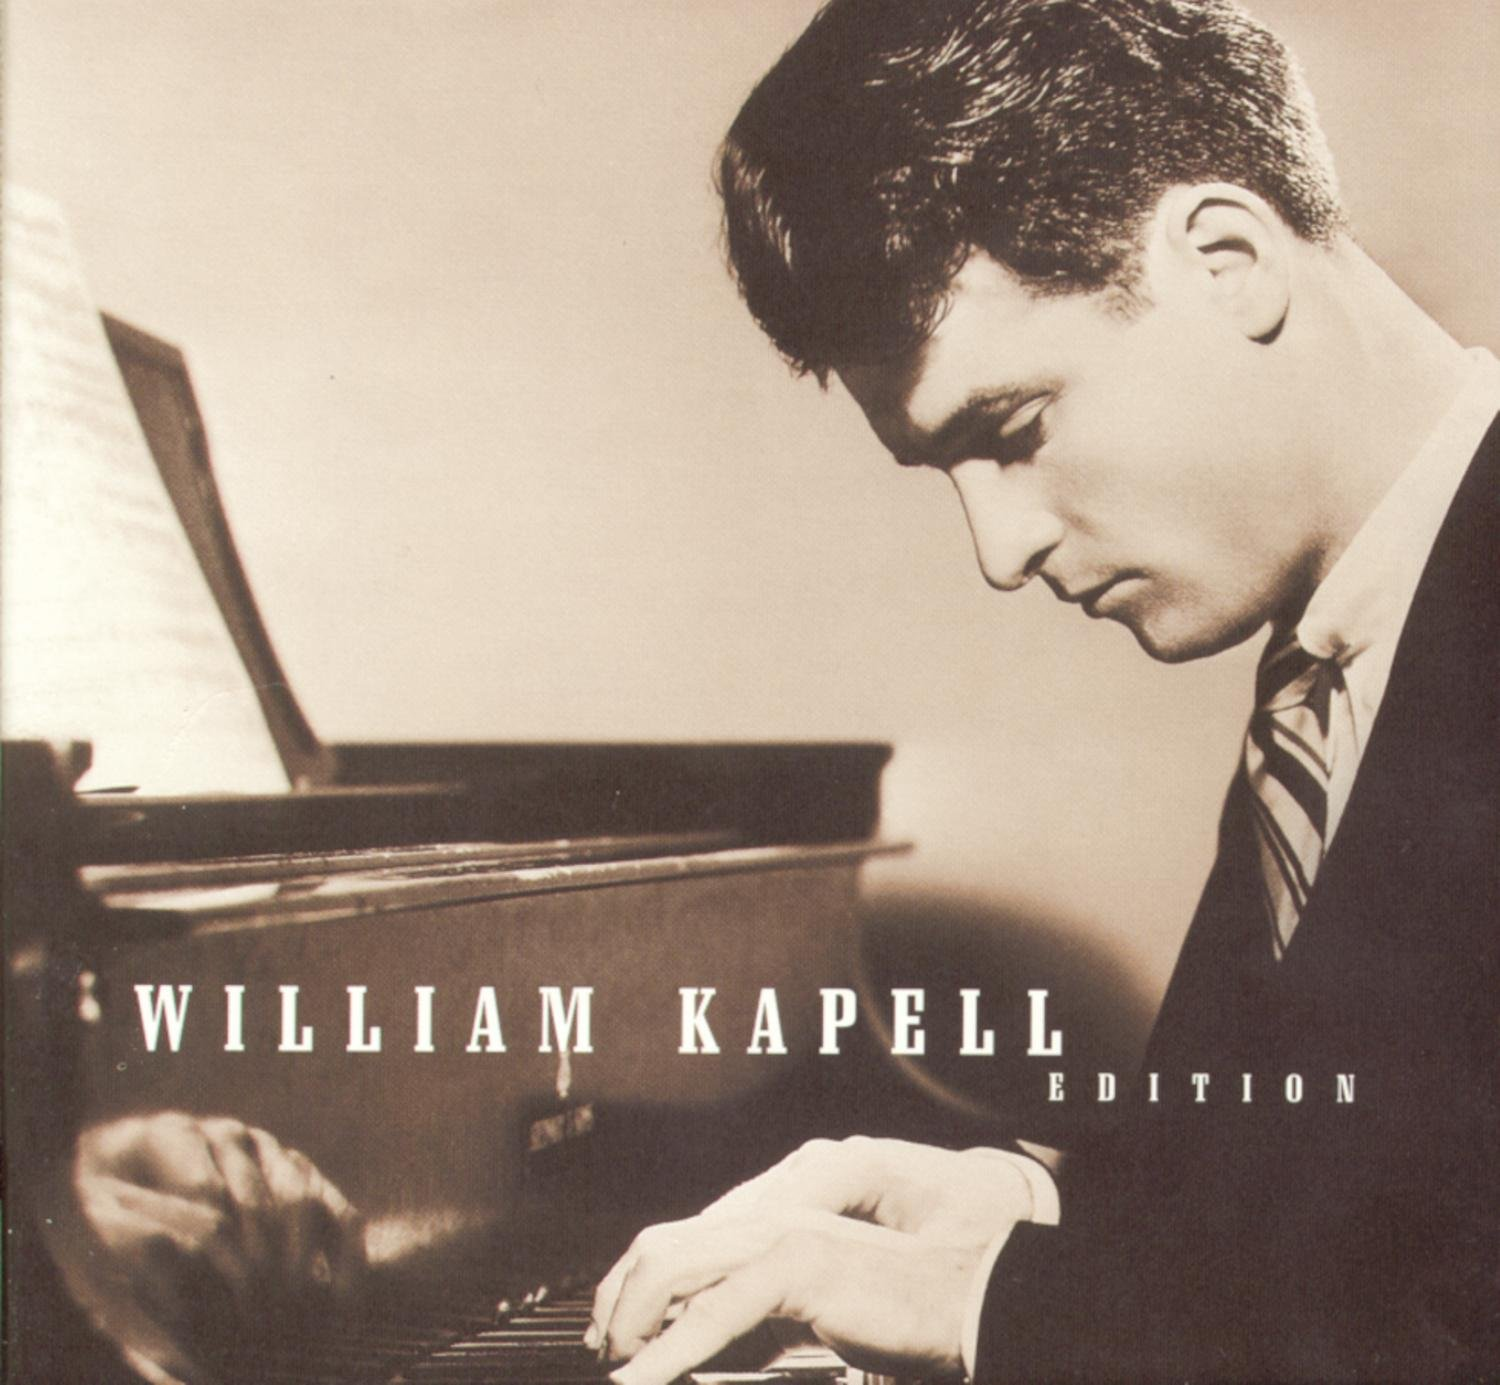 William Kapell Edition by Sony Classical